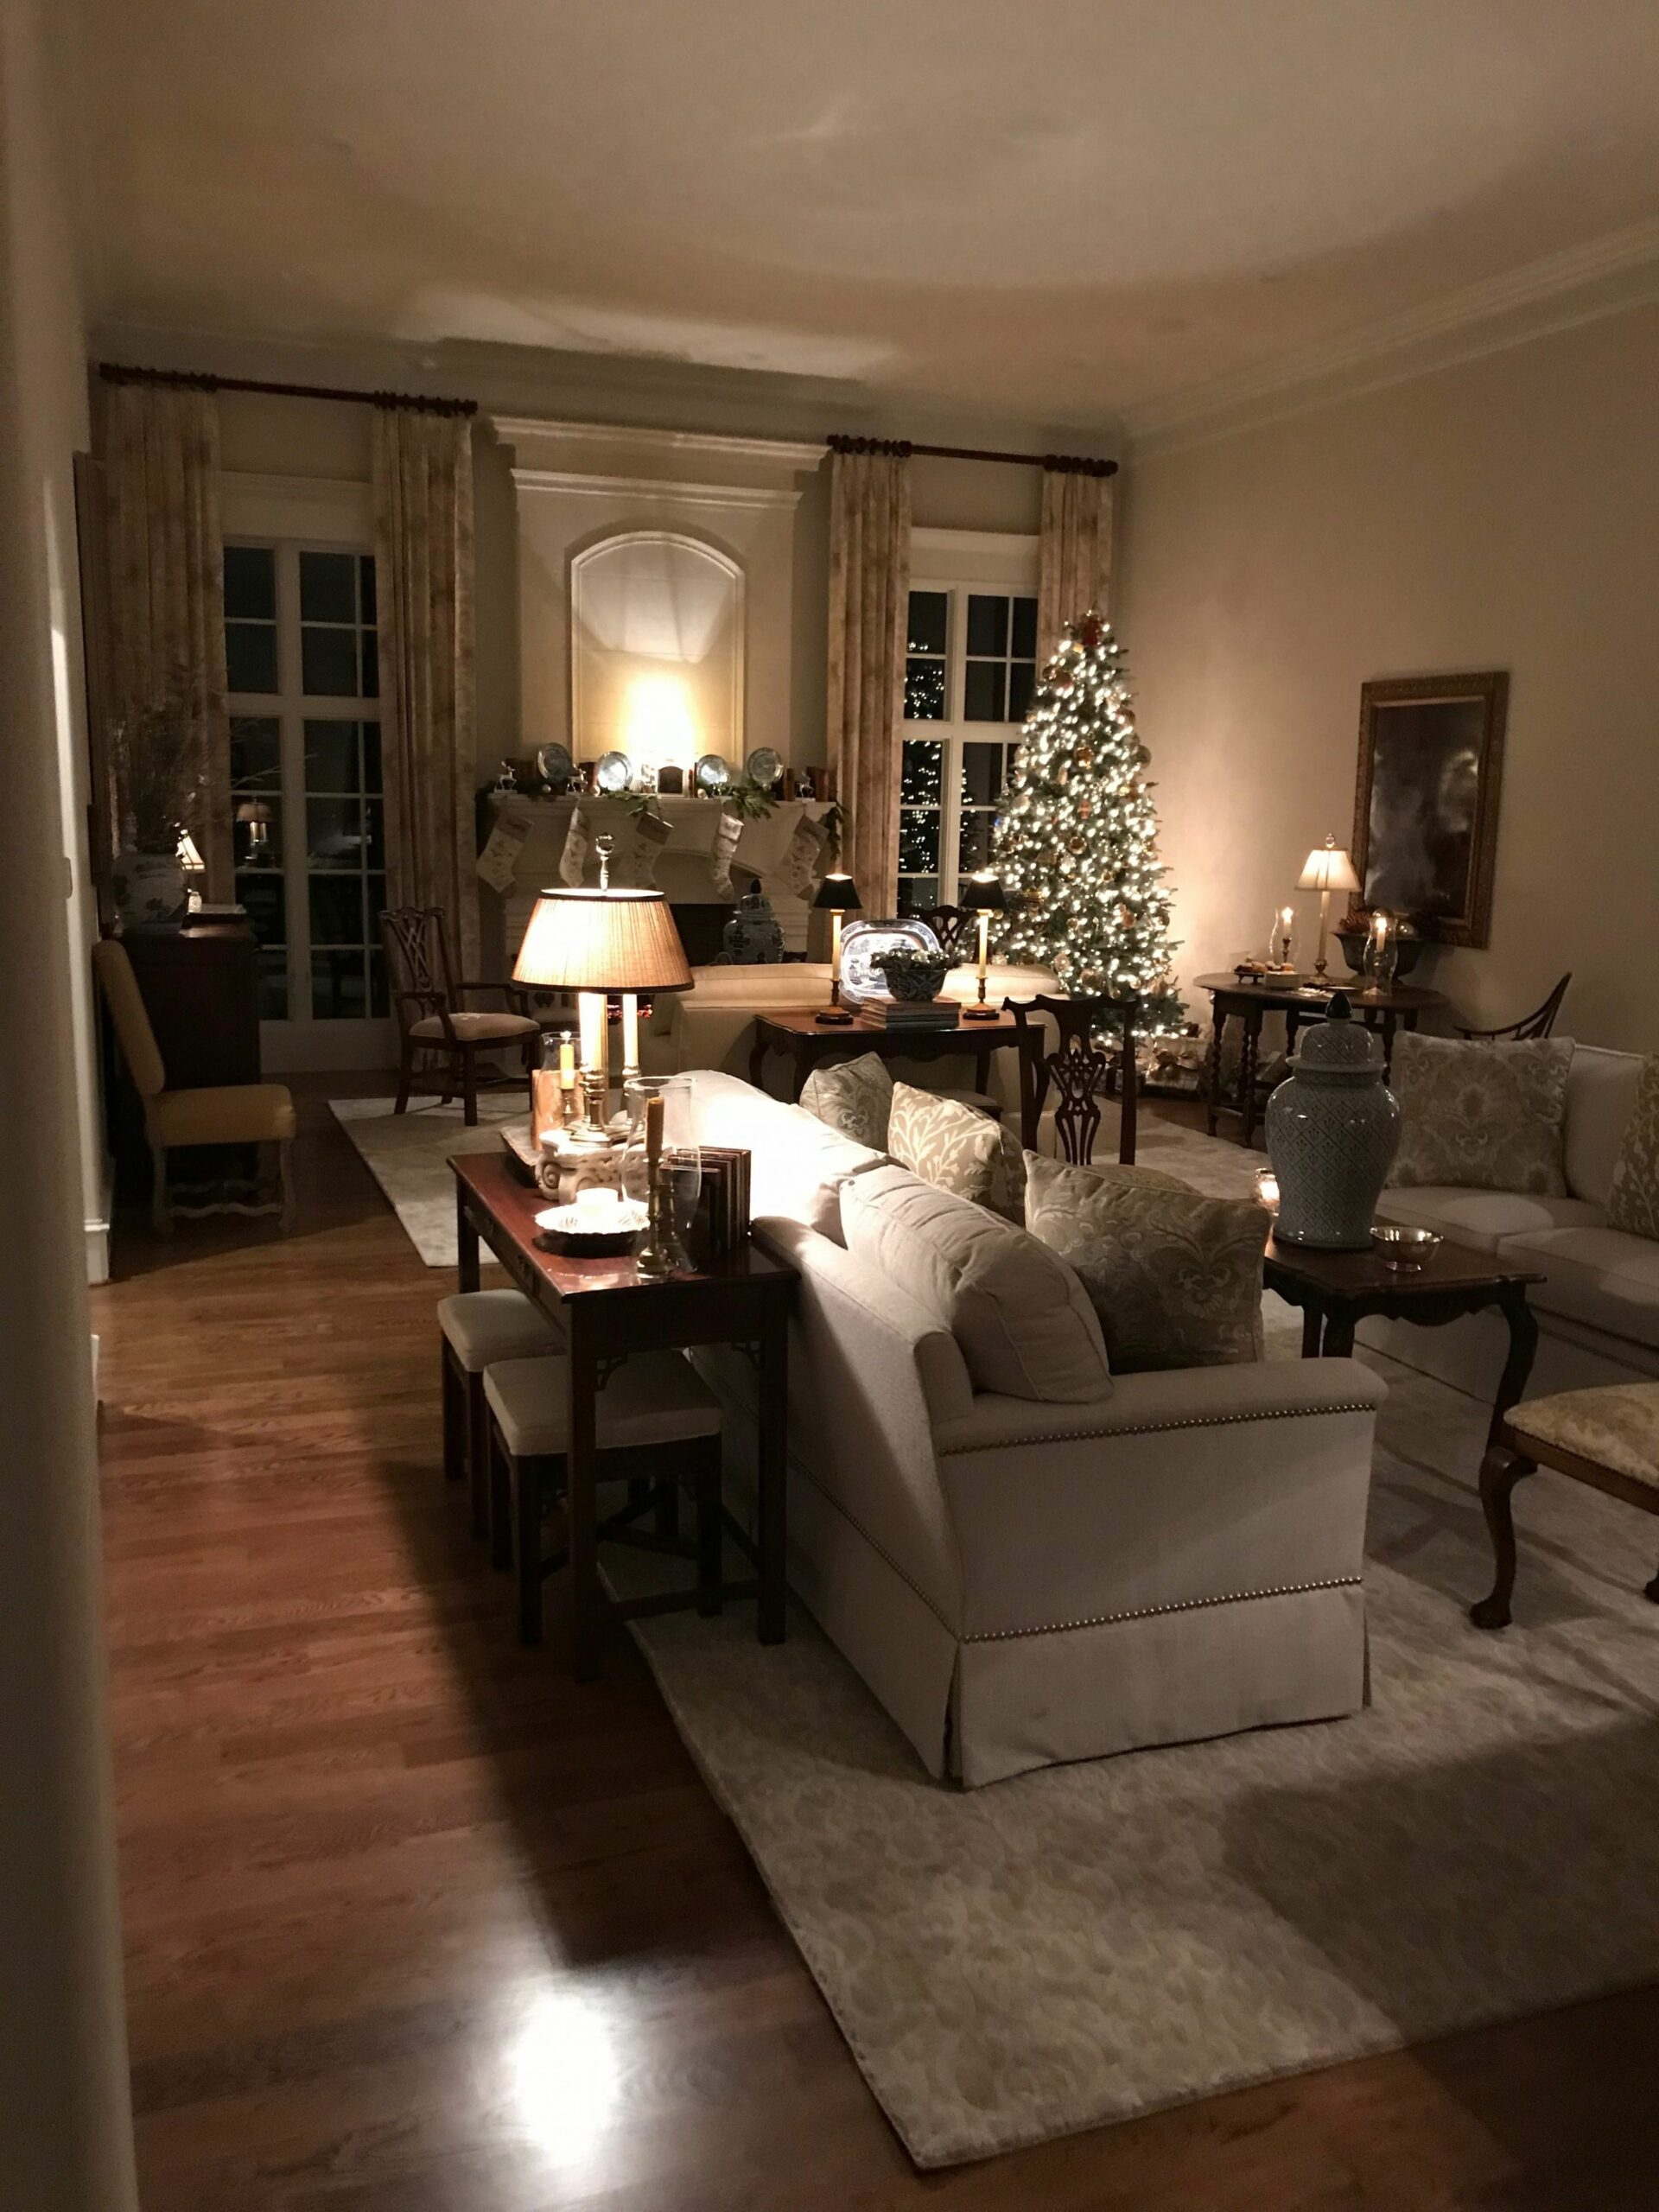 Living room night decor and please those windows facing the ..